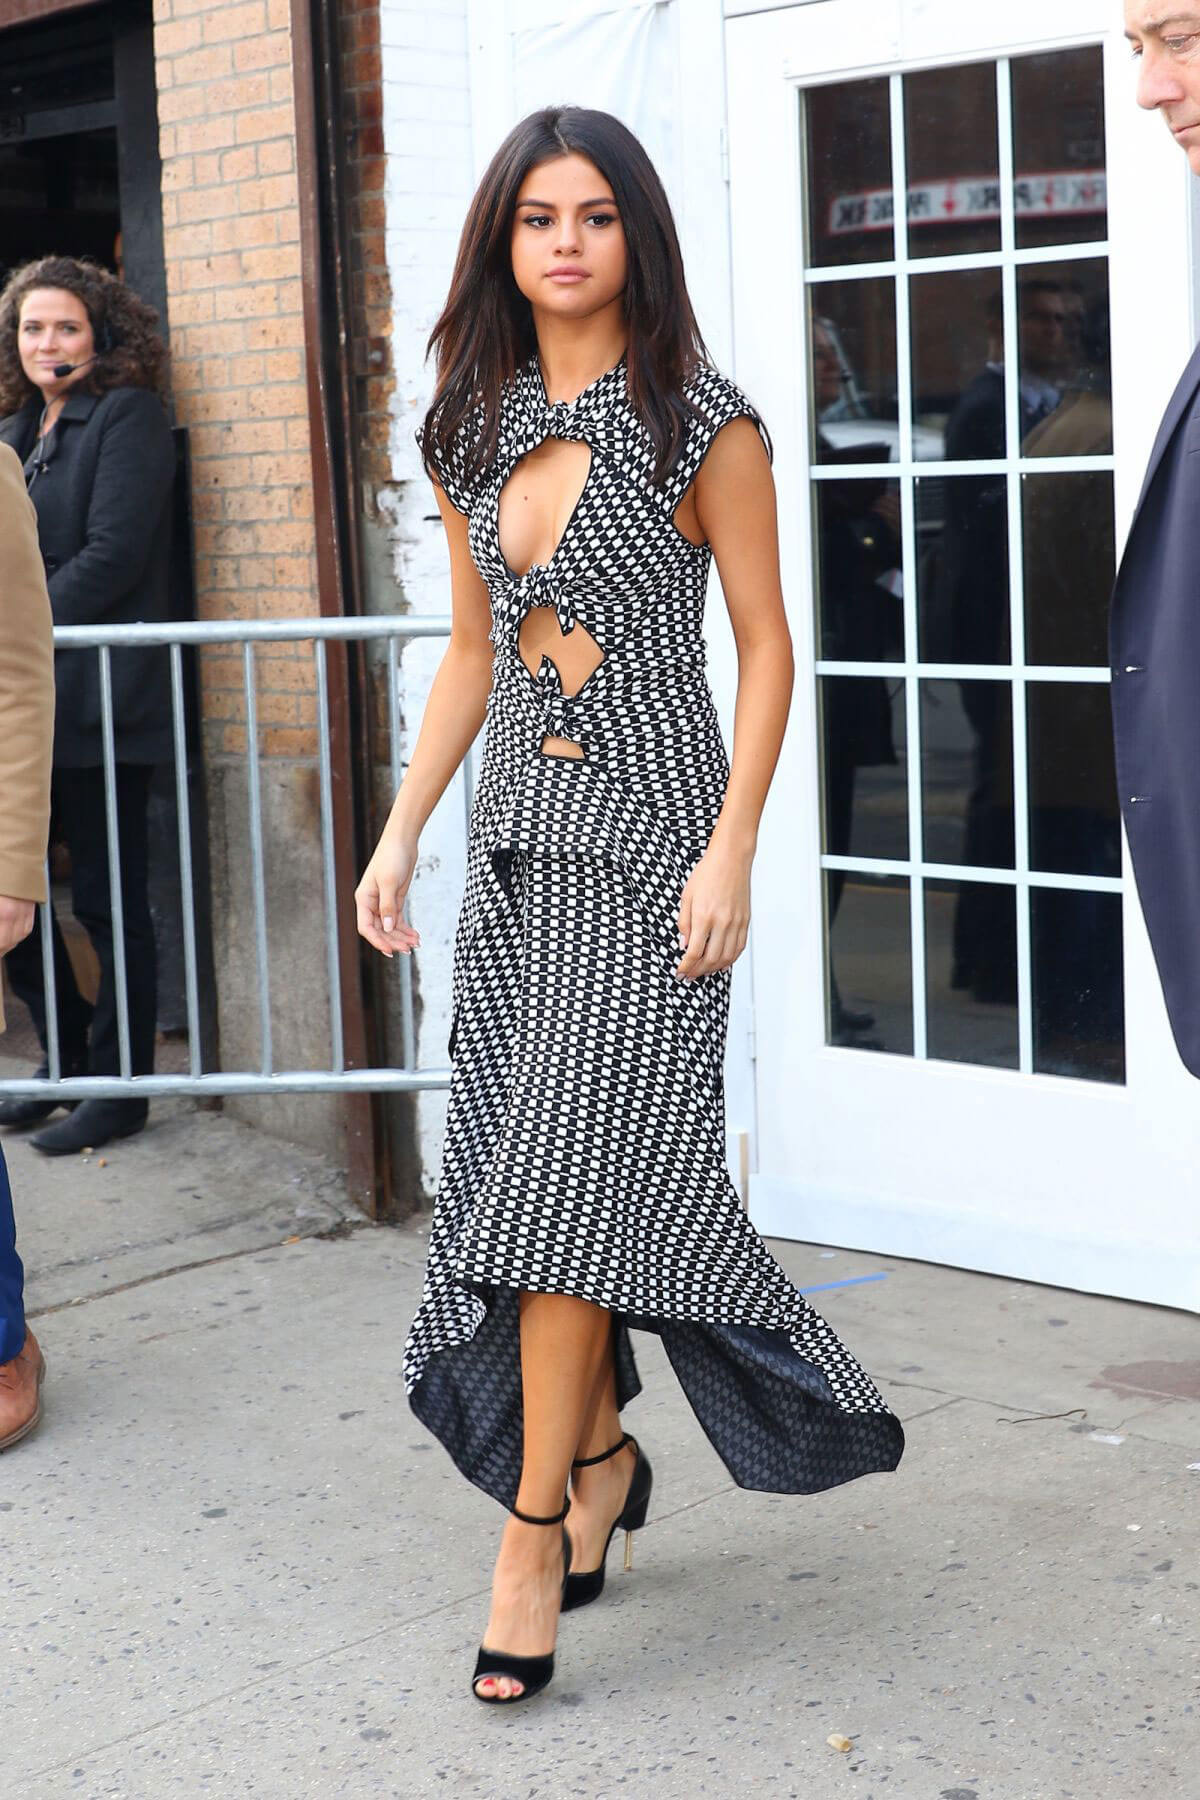 Selena Gomez Leaves a Promo Event in New York